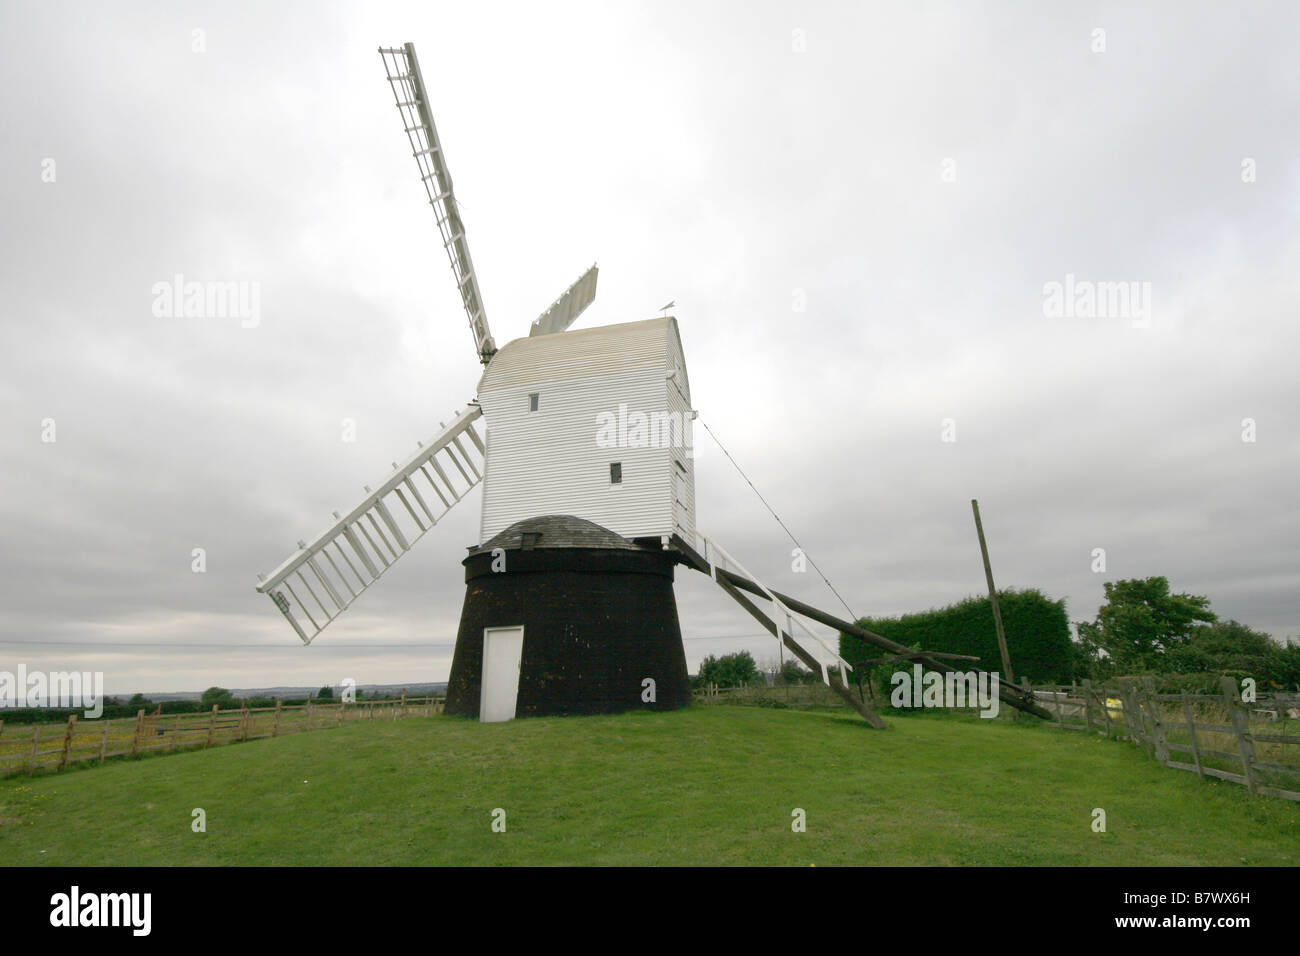 Wrawby windmill a wooden sail postmill near Brigg Lincolnshire which rotates on a post to catch the wind - Stock Image